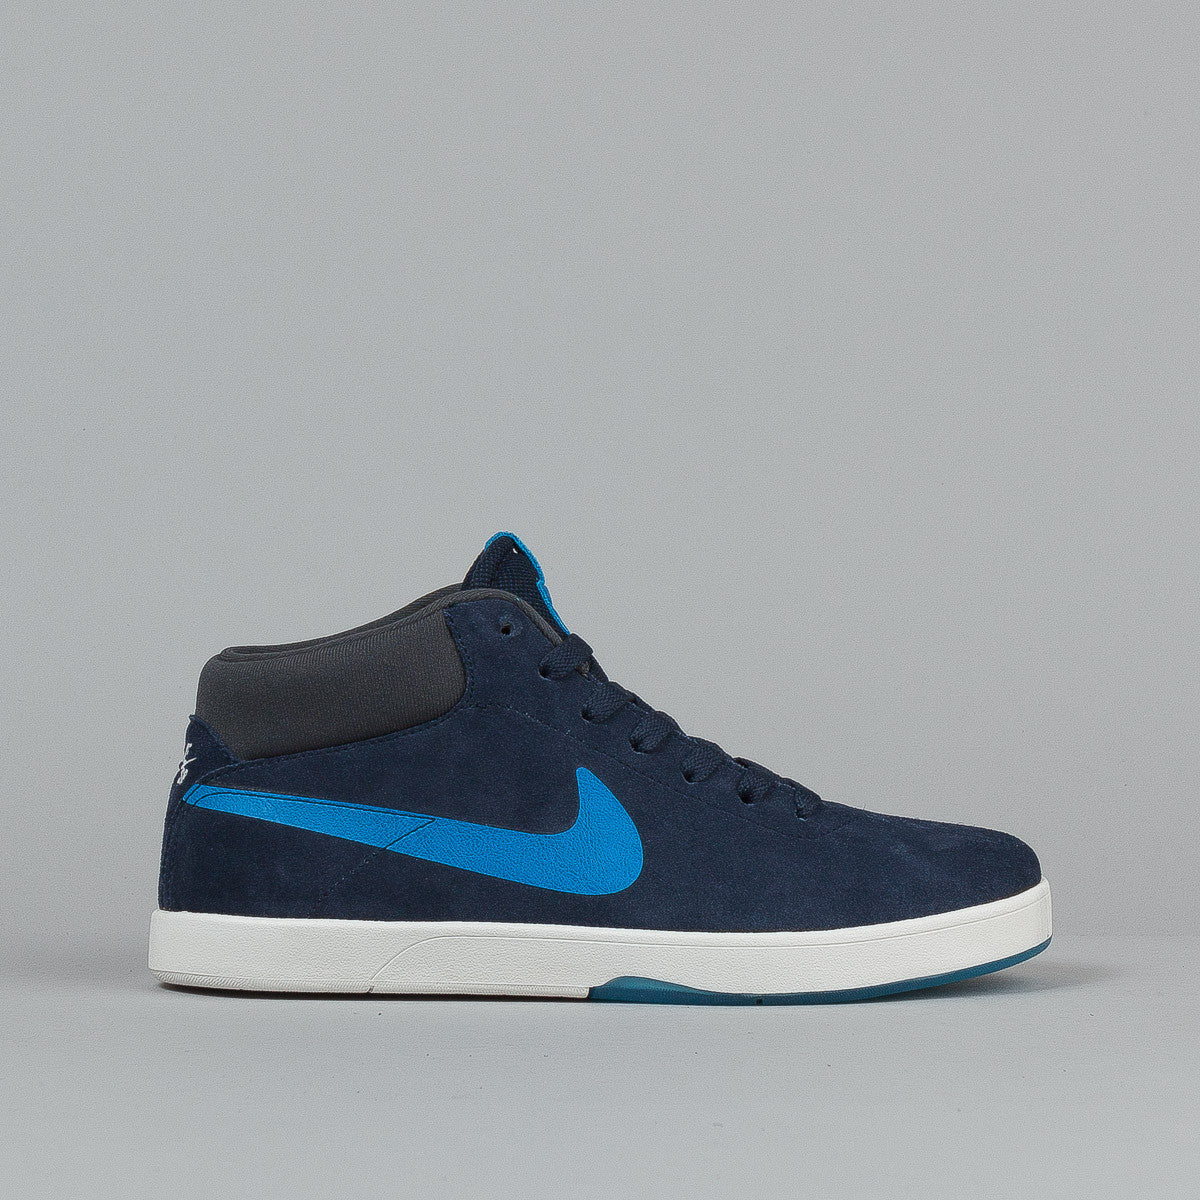 Nike SB Eric Koston MId Obsidian / Photo Blue